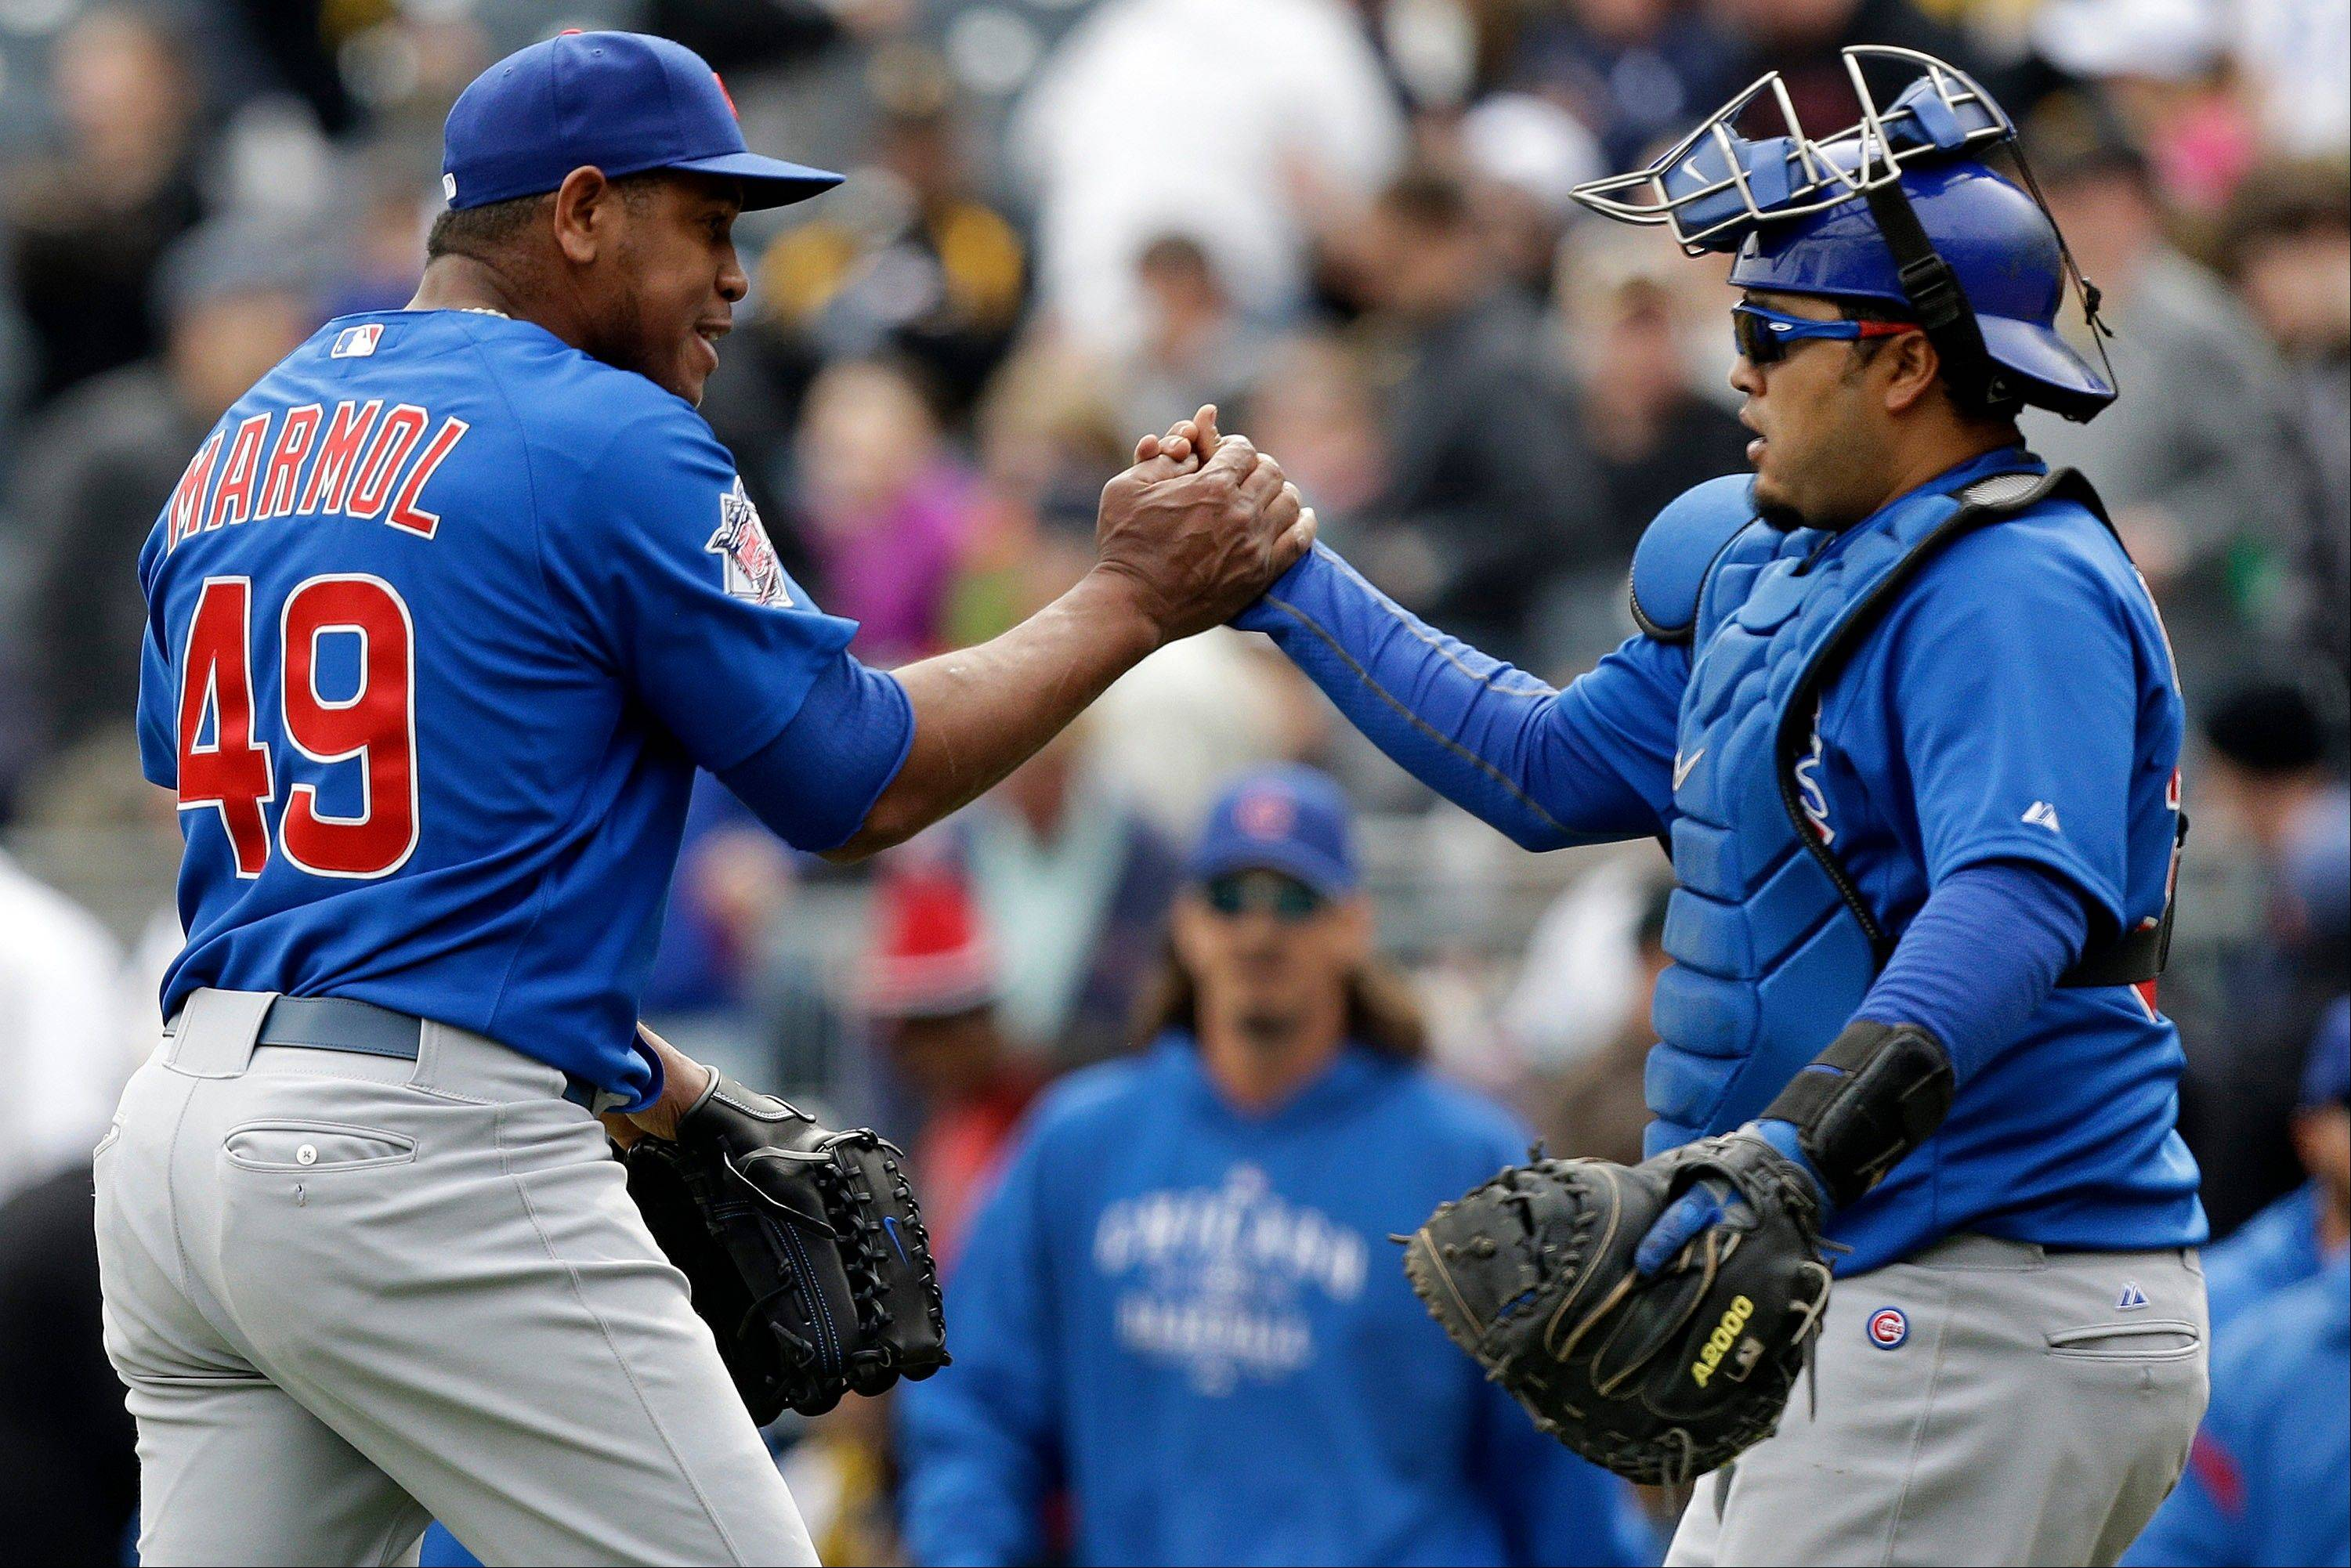 Cubs relief pitcher Carlos Marmol, left, celebrates with catcher Dioner Navarro after getting the final out thanks to a double play in the ninth inning to preserve a 3-2 win over the Pirates in Pittsburgh, Thursday.